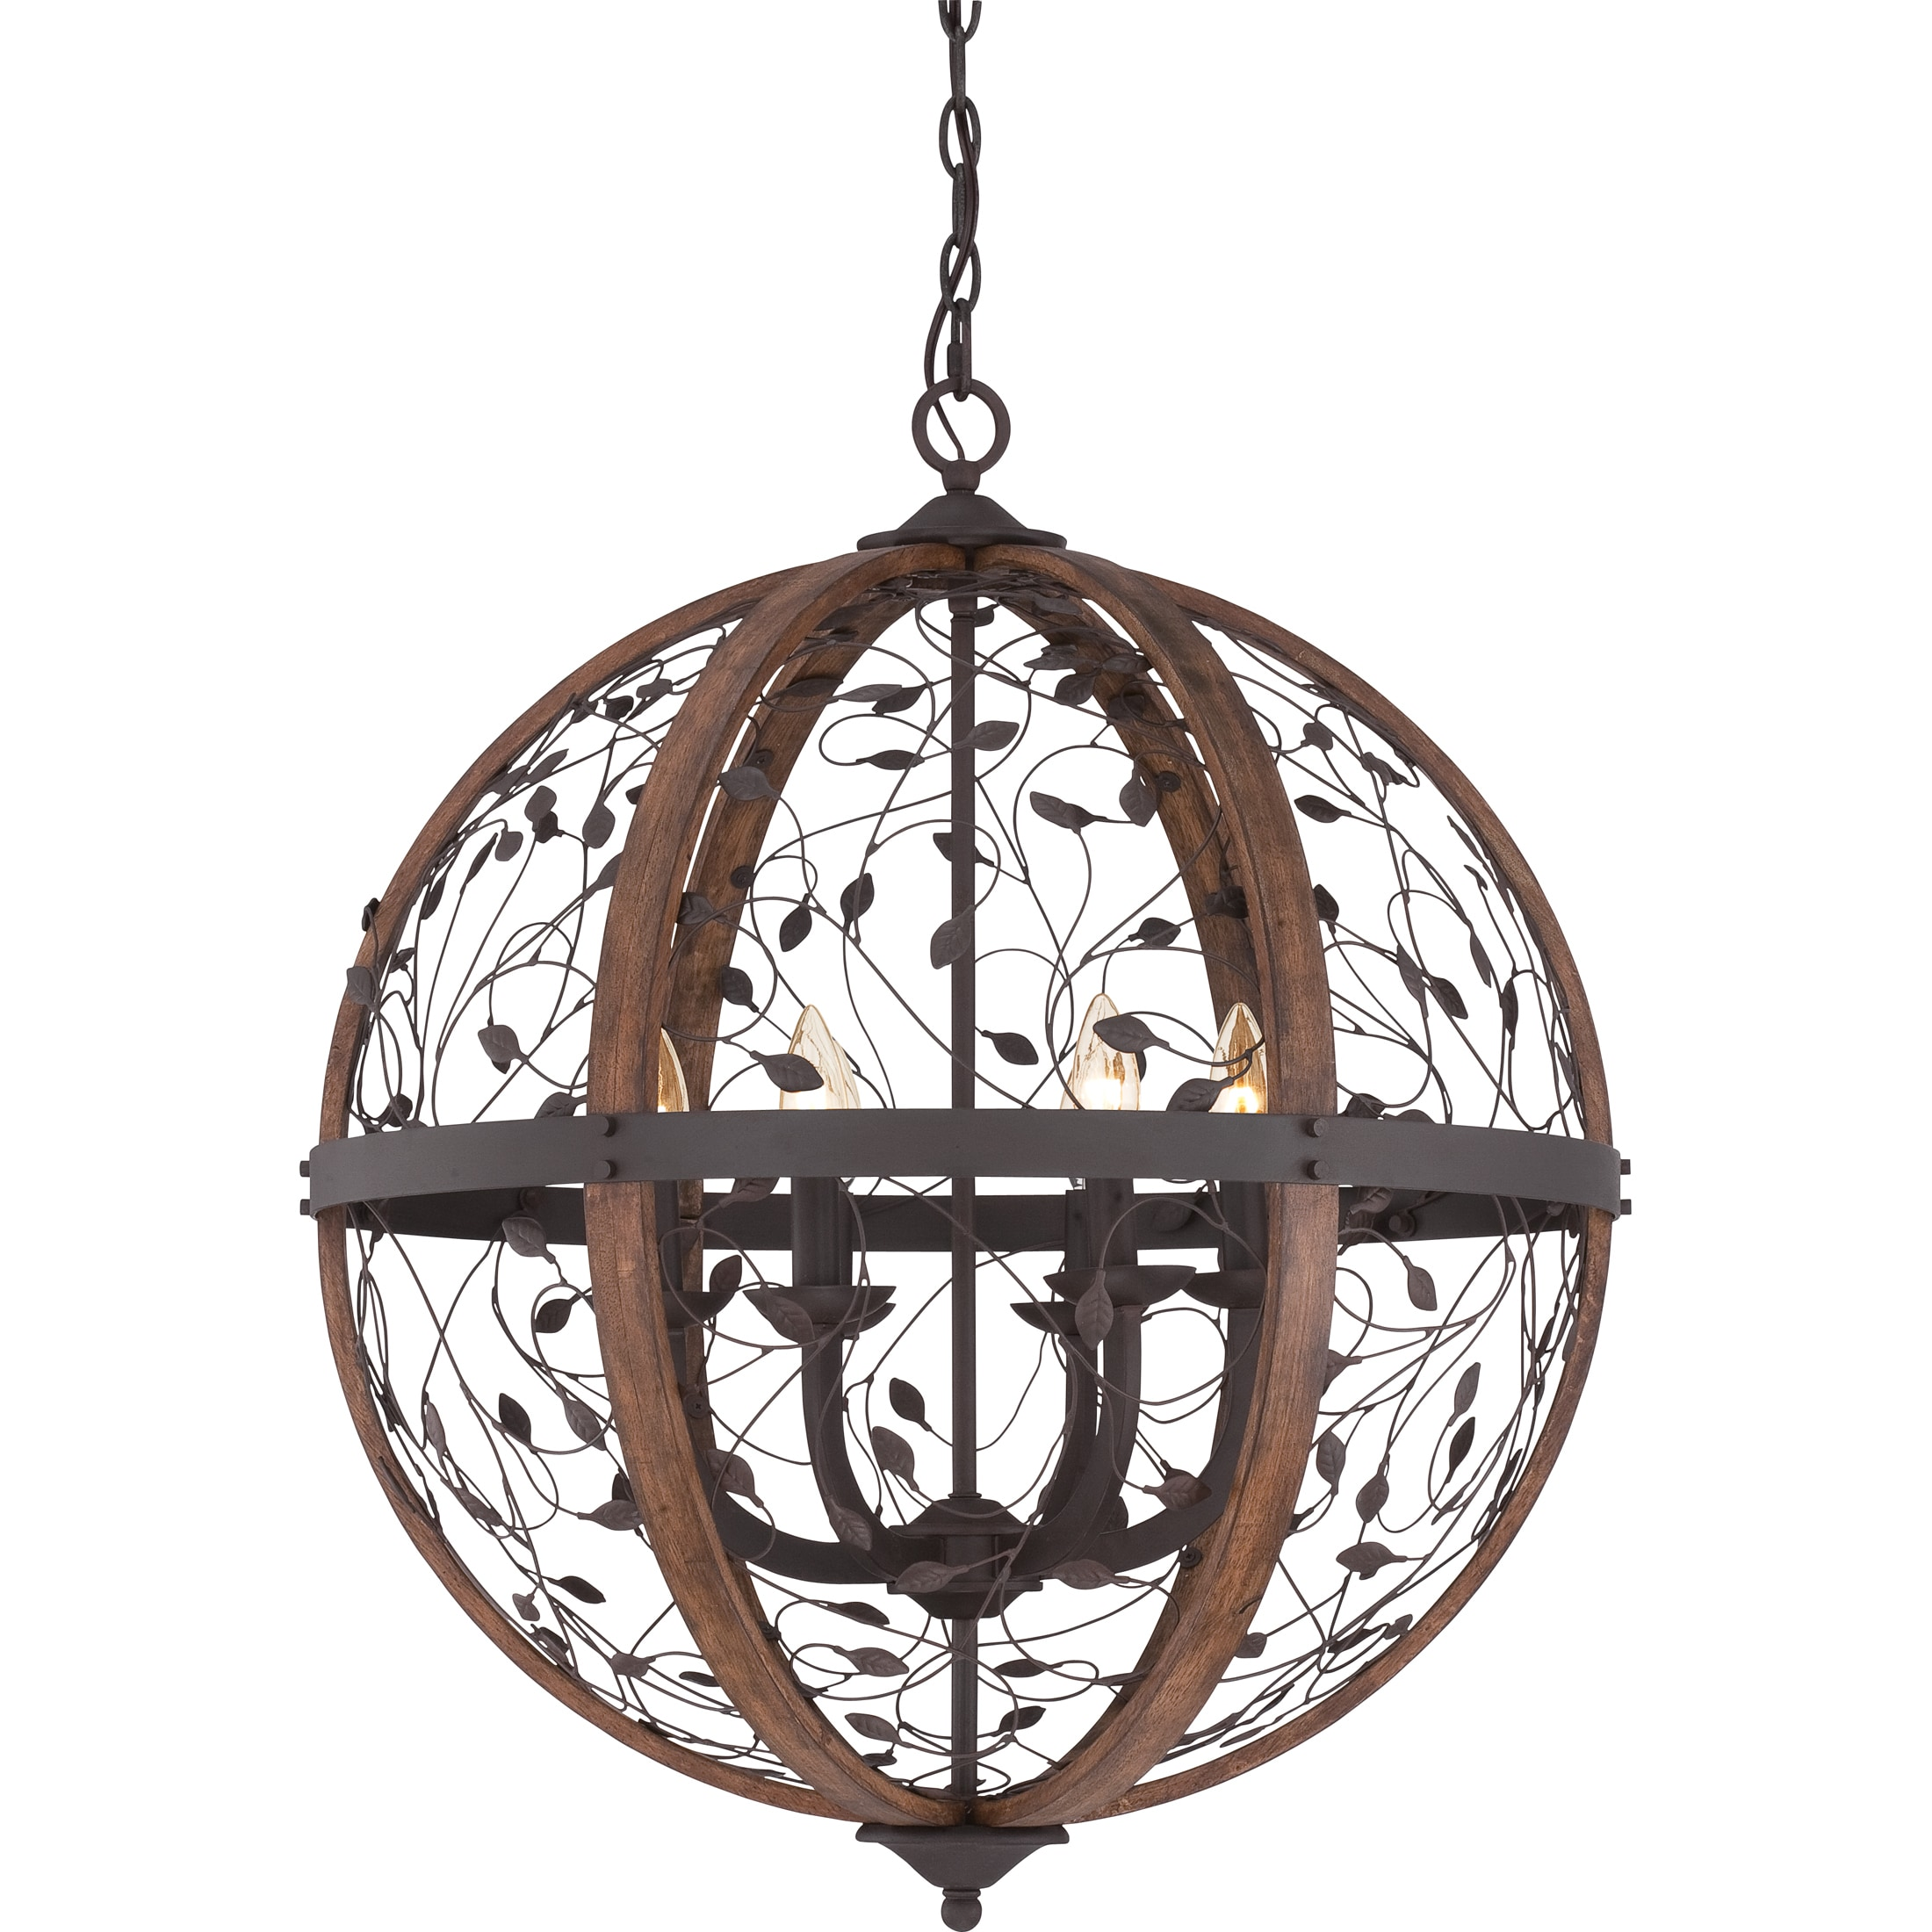 Quoizel chamber 6 light darkest bronze cage chandelier free quoizel chamber 6 light darkest bronze cage chandelier free shipping today overstock 17186668 arubaitofo Image collections